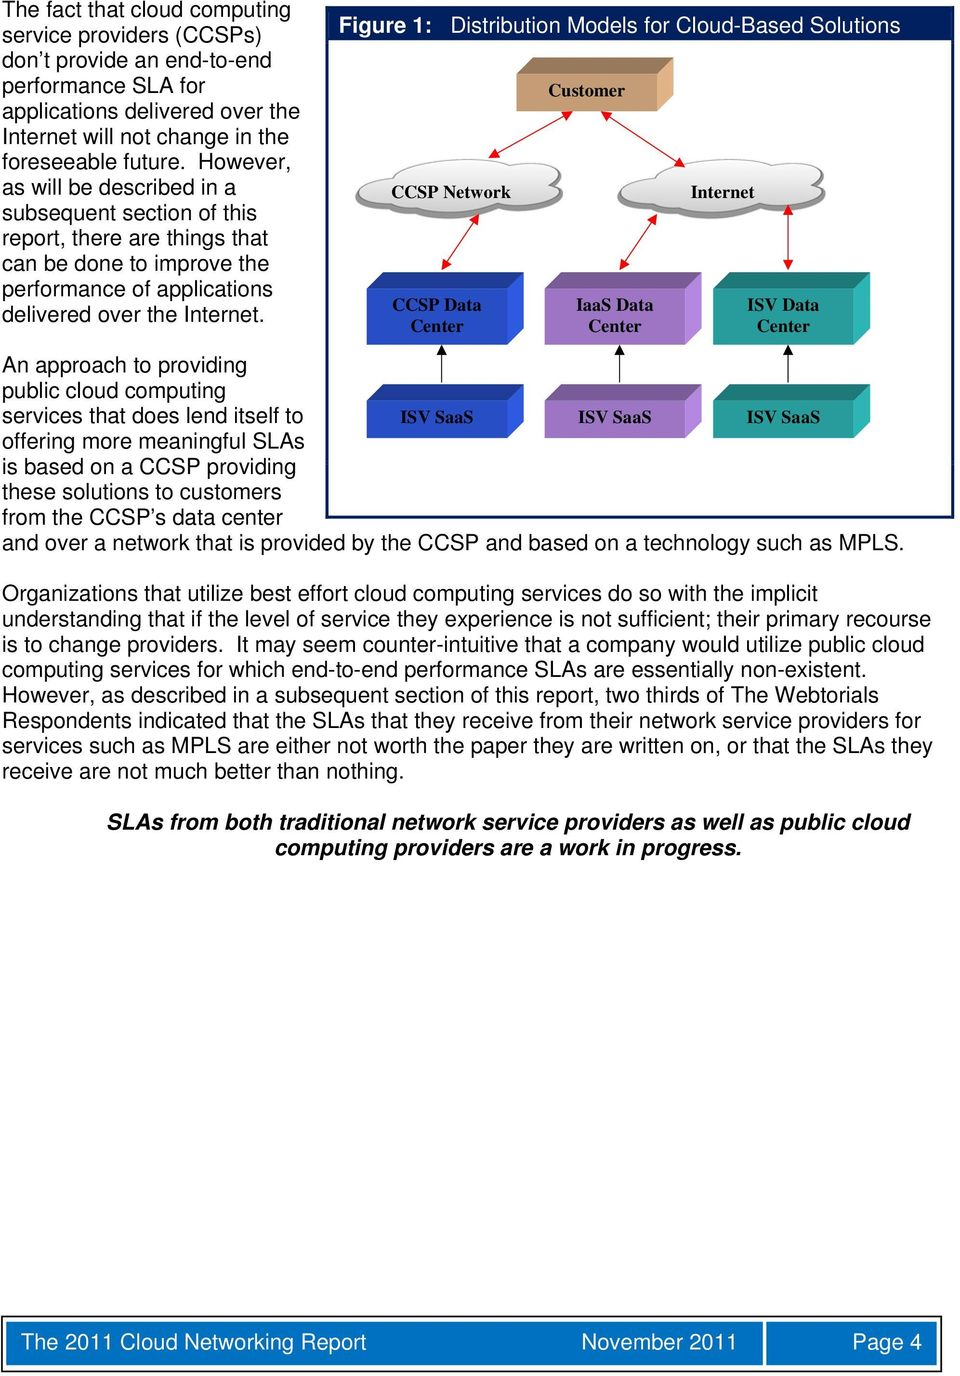 Figure 1: Distribution Models for Cloud-Based Solutions CCSP Network CCSP Data Center Customer IaaS Data Center Internet ISV Data Center An approach to providing public cloud computing services that